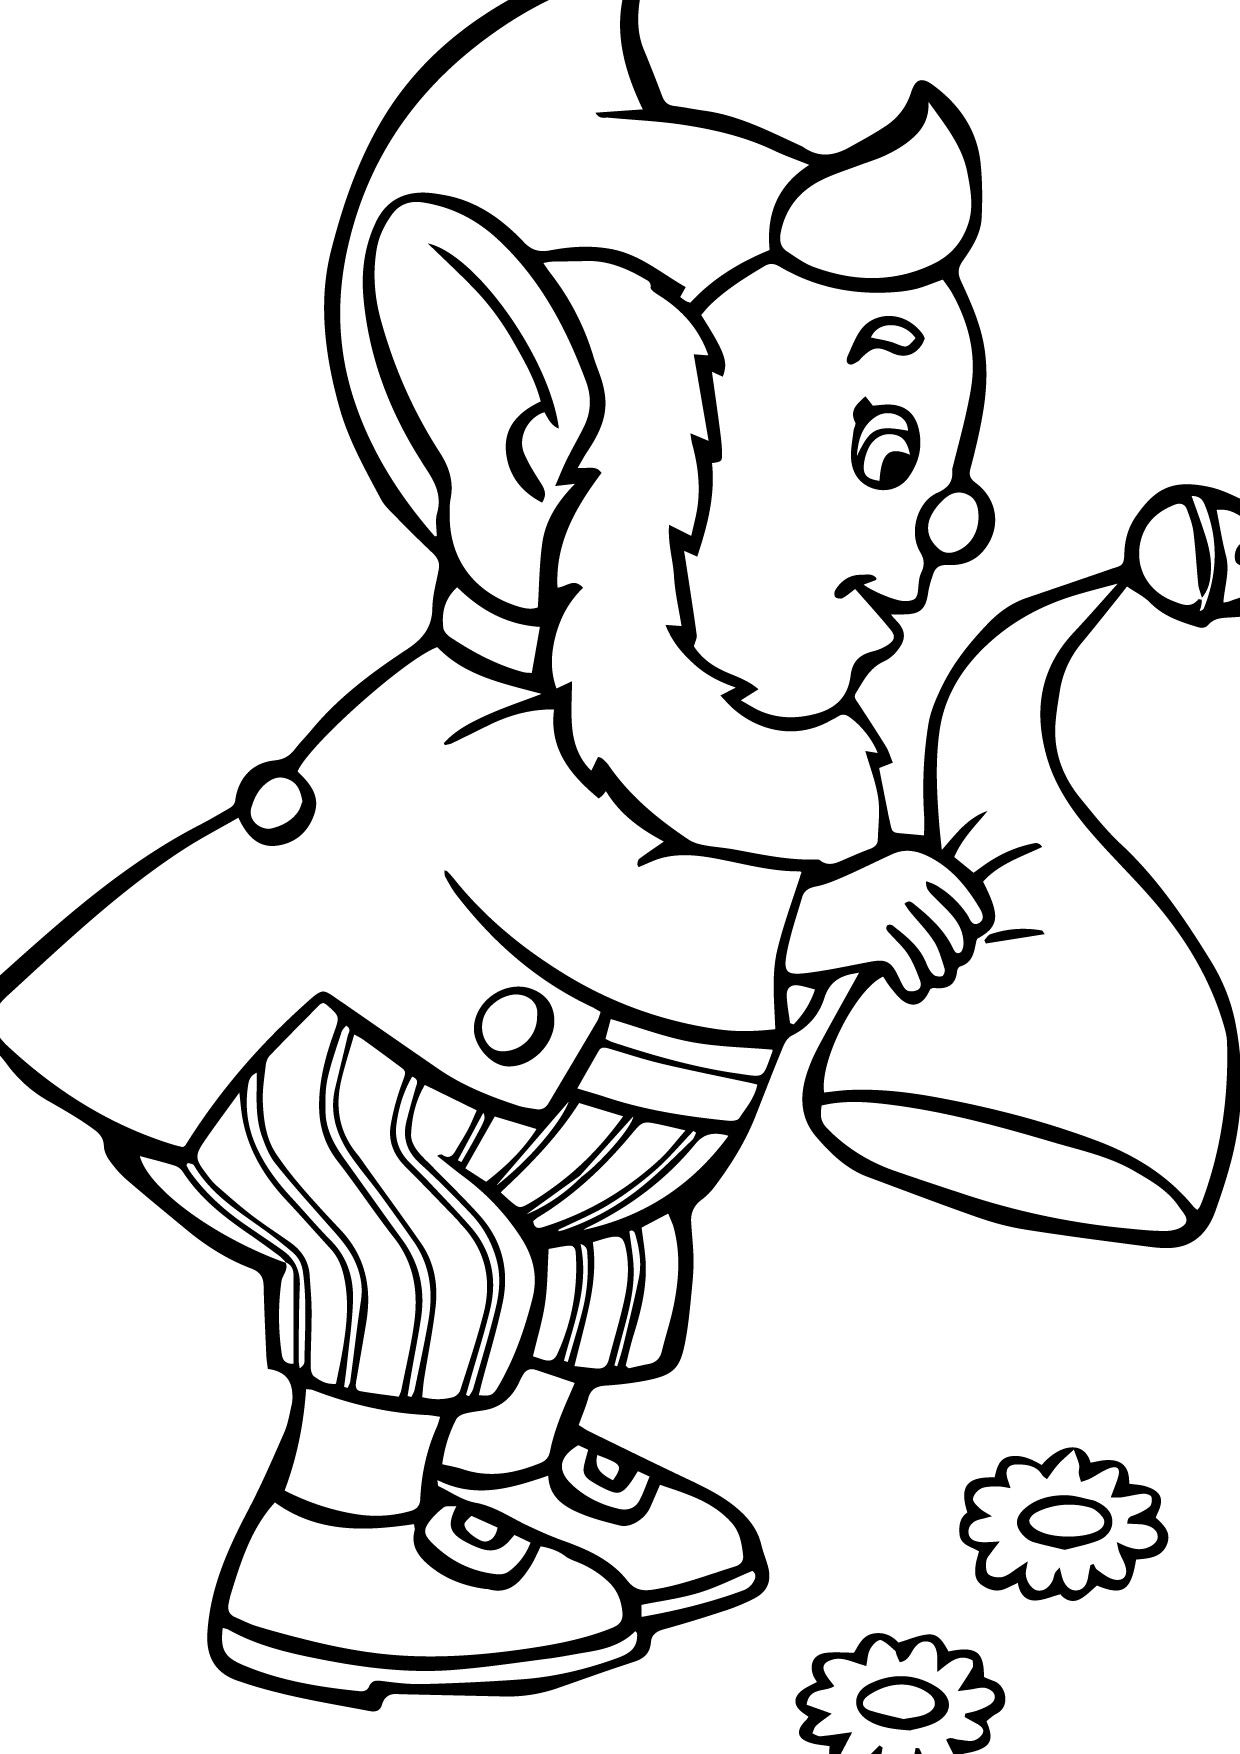 Cool Coloring Page 22 09 2015 120942 01 Check More At Http Www Mcoloring Com Index Php 2015 09 22 Colori Cool Coloring Pages Coloring Pictures Coloring Pages